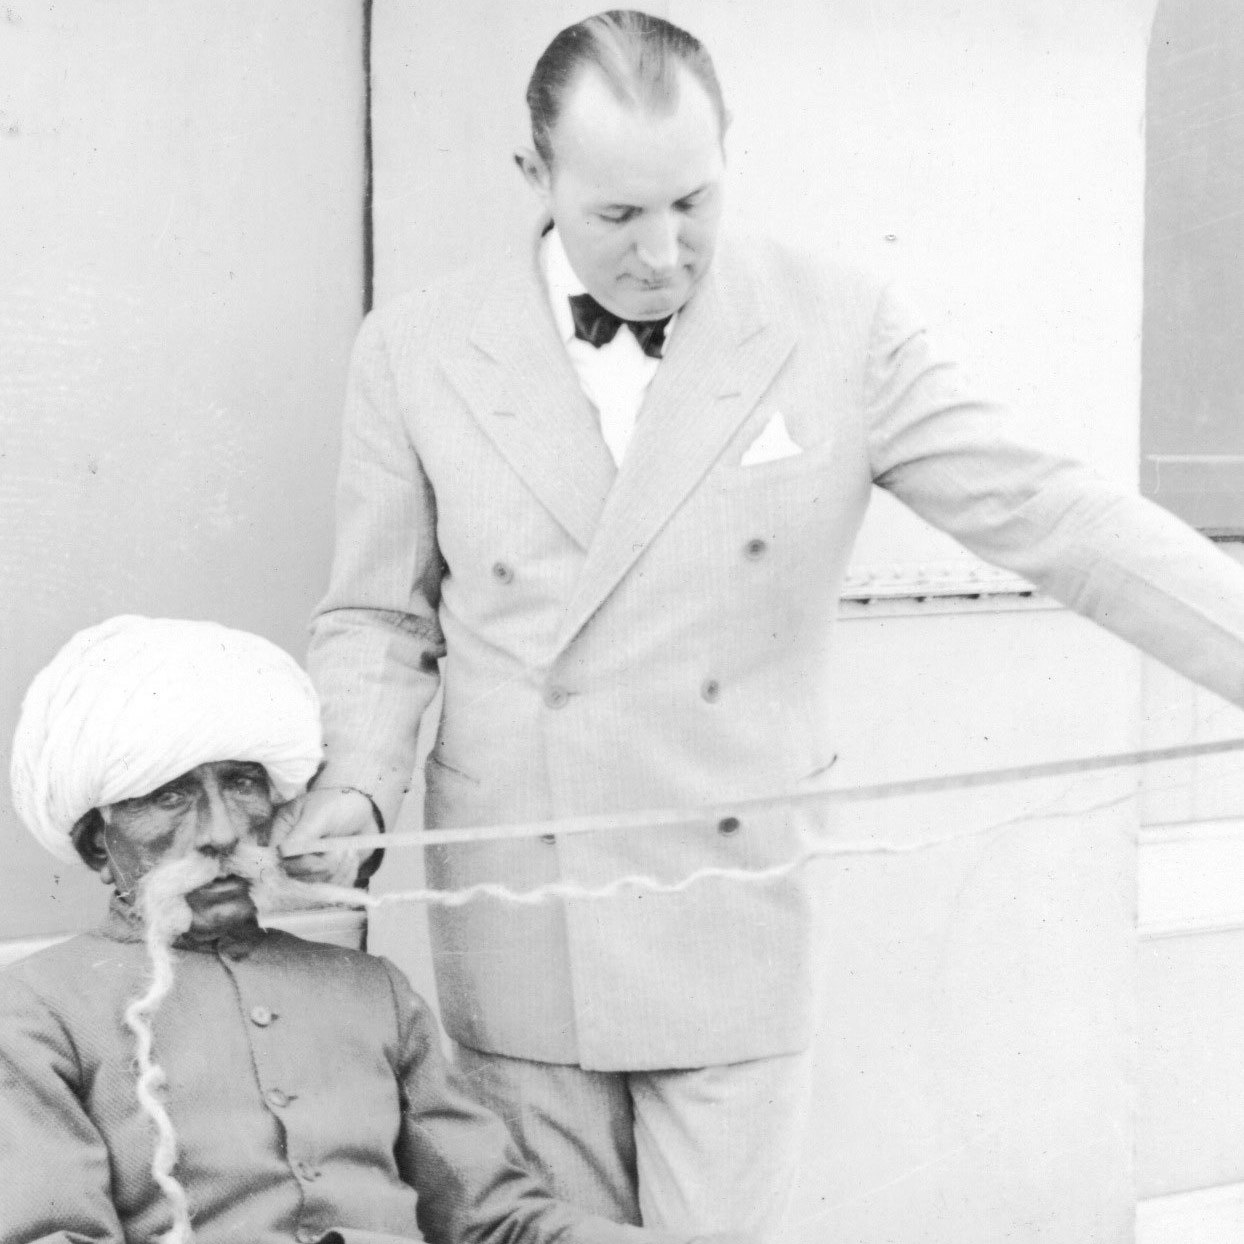 Ripley poses with Arjan Desur Dangar, one of the performers at Ripley's Odditorium exhibition at the 1933 Chicago World's Fair